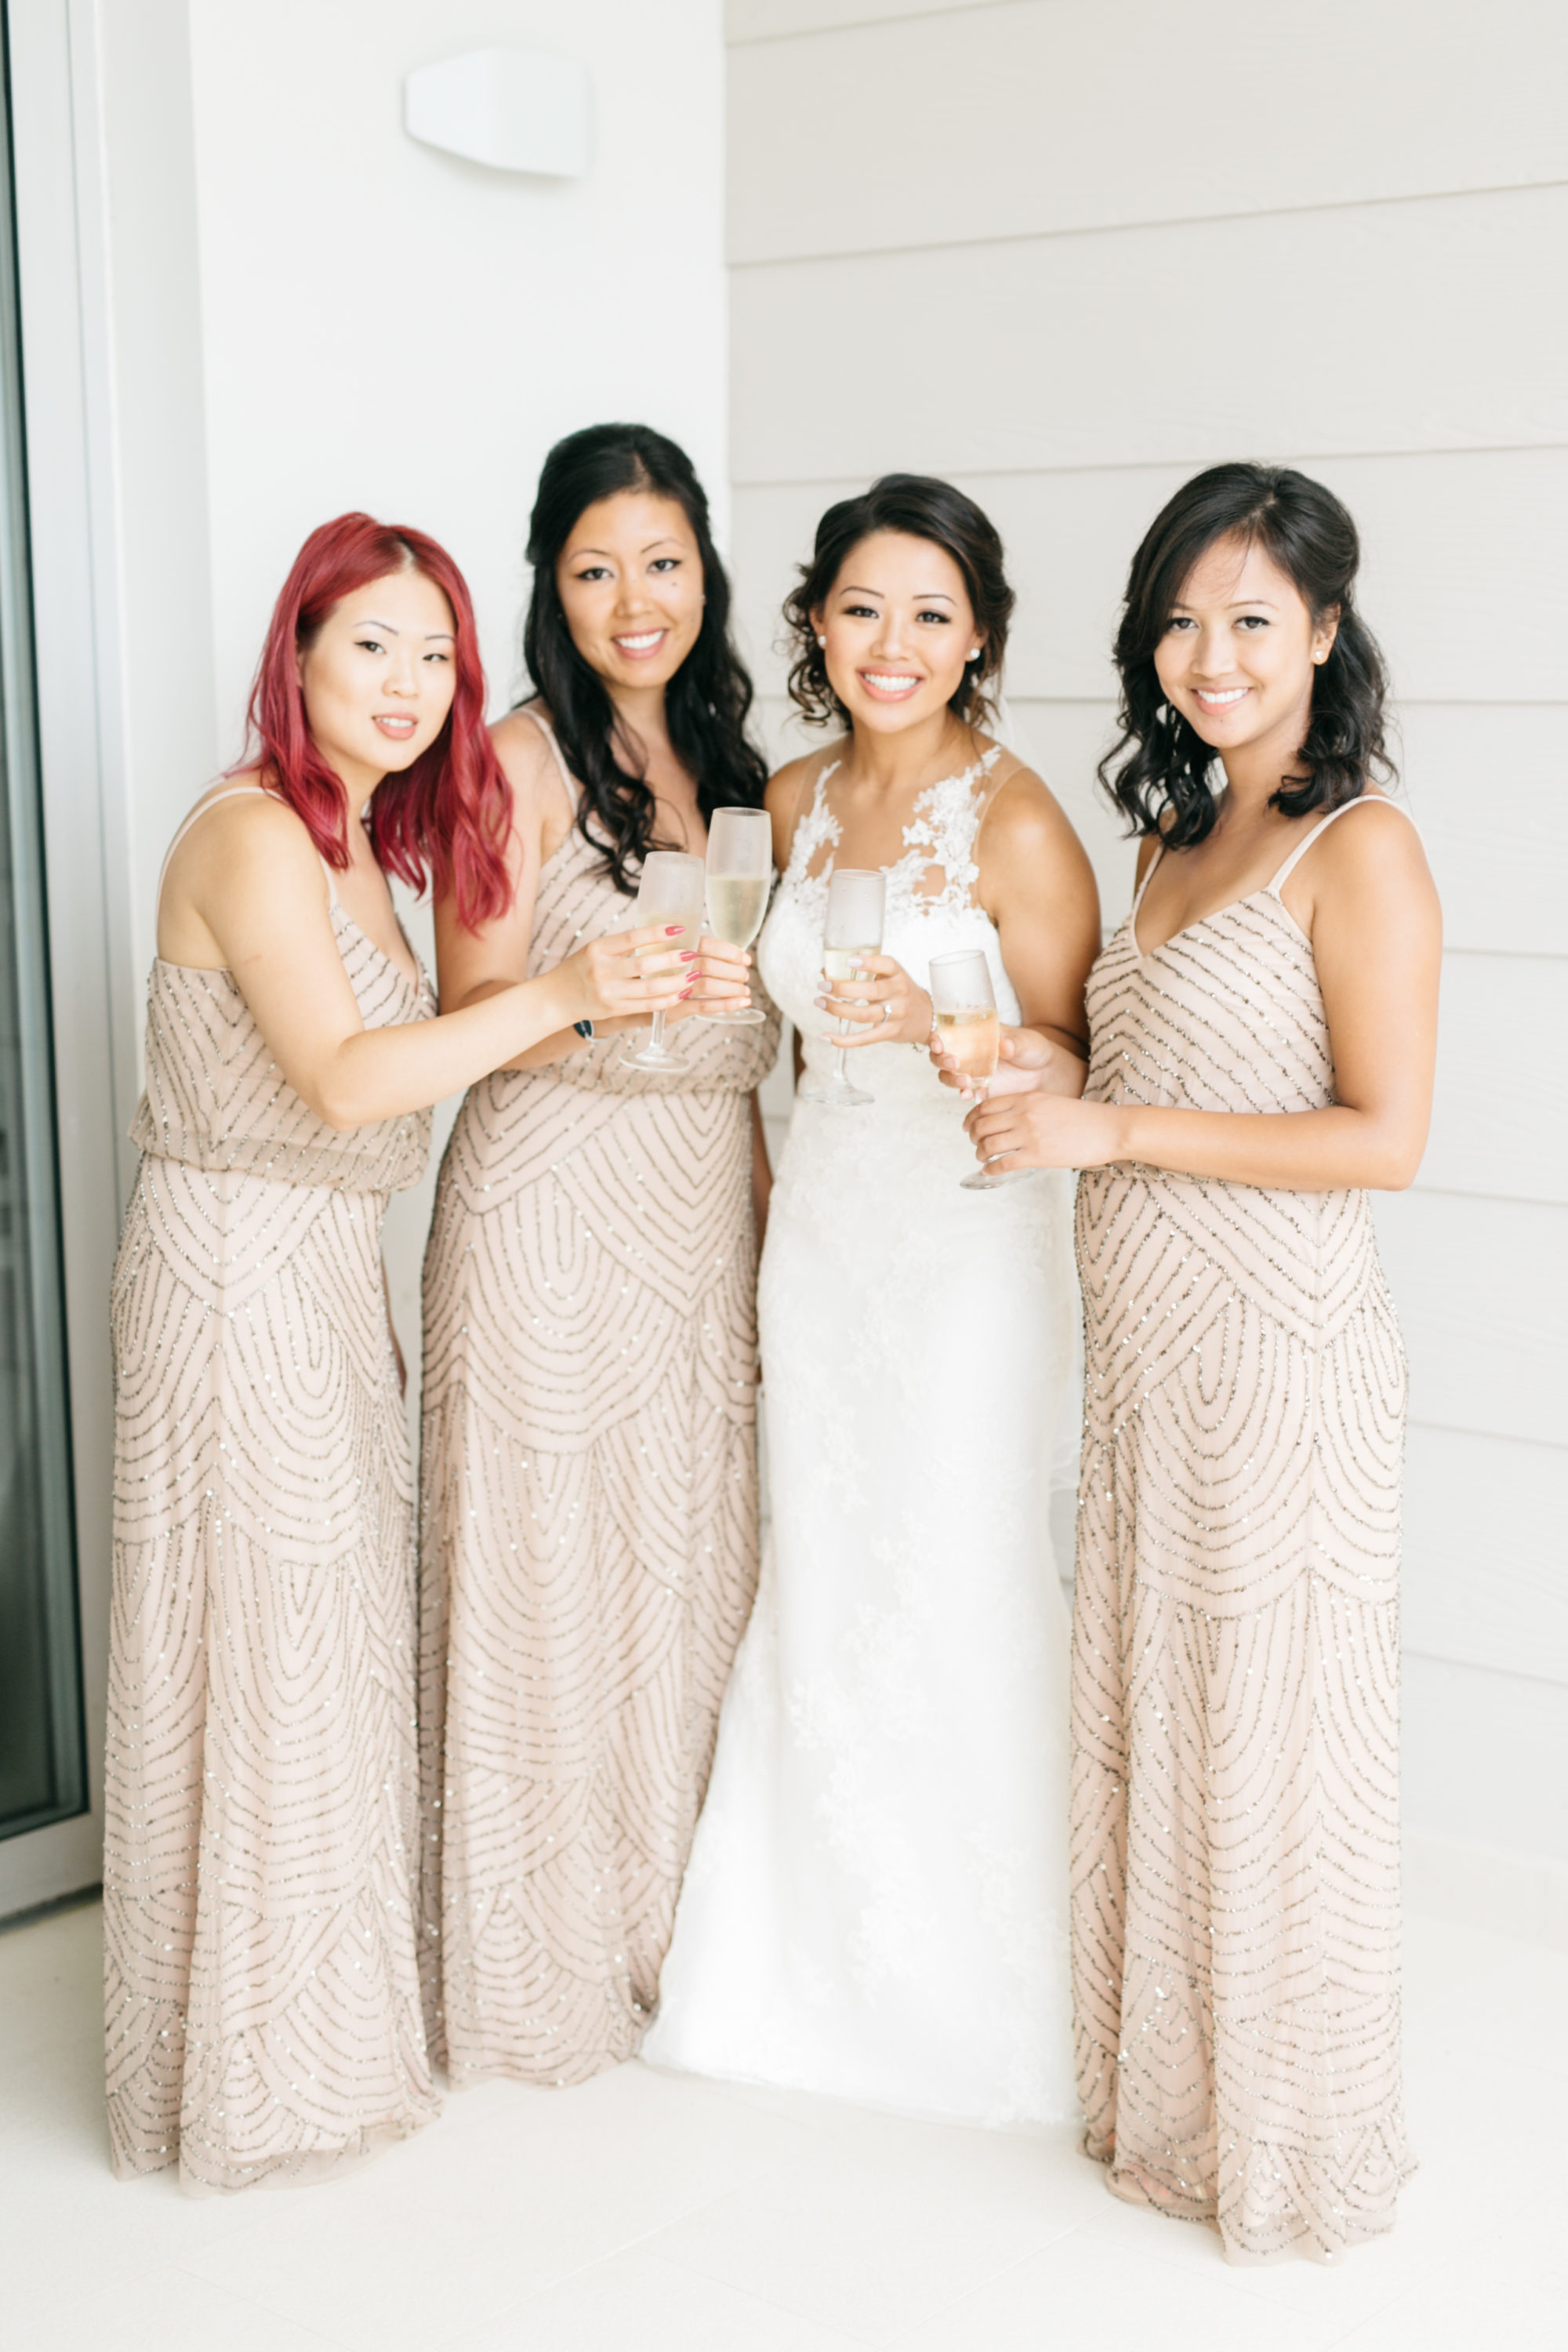 Bride and bridesmaids pouring champagne